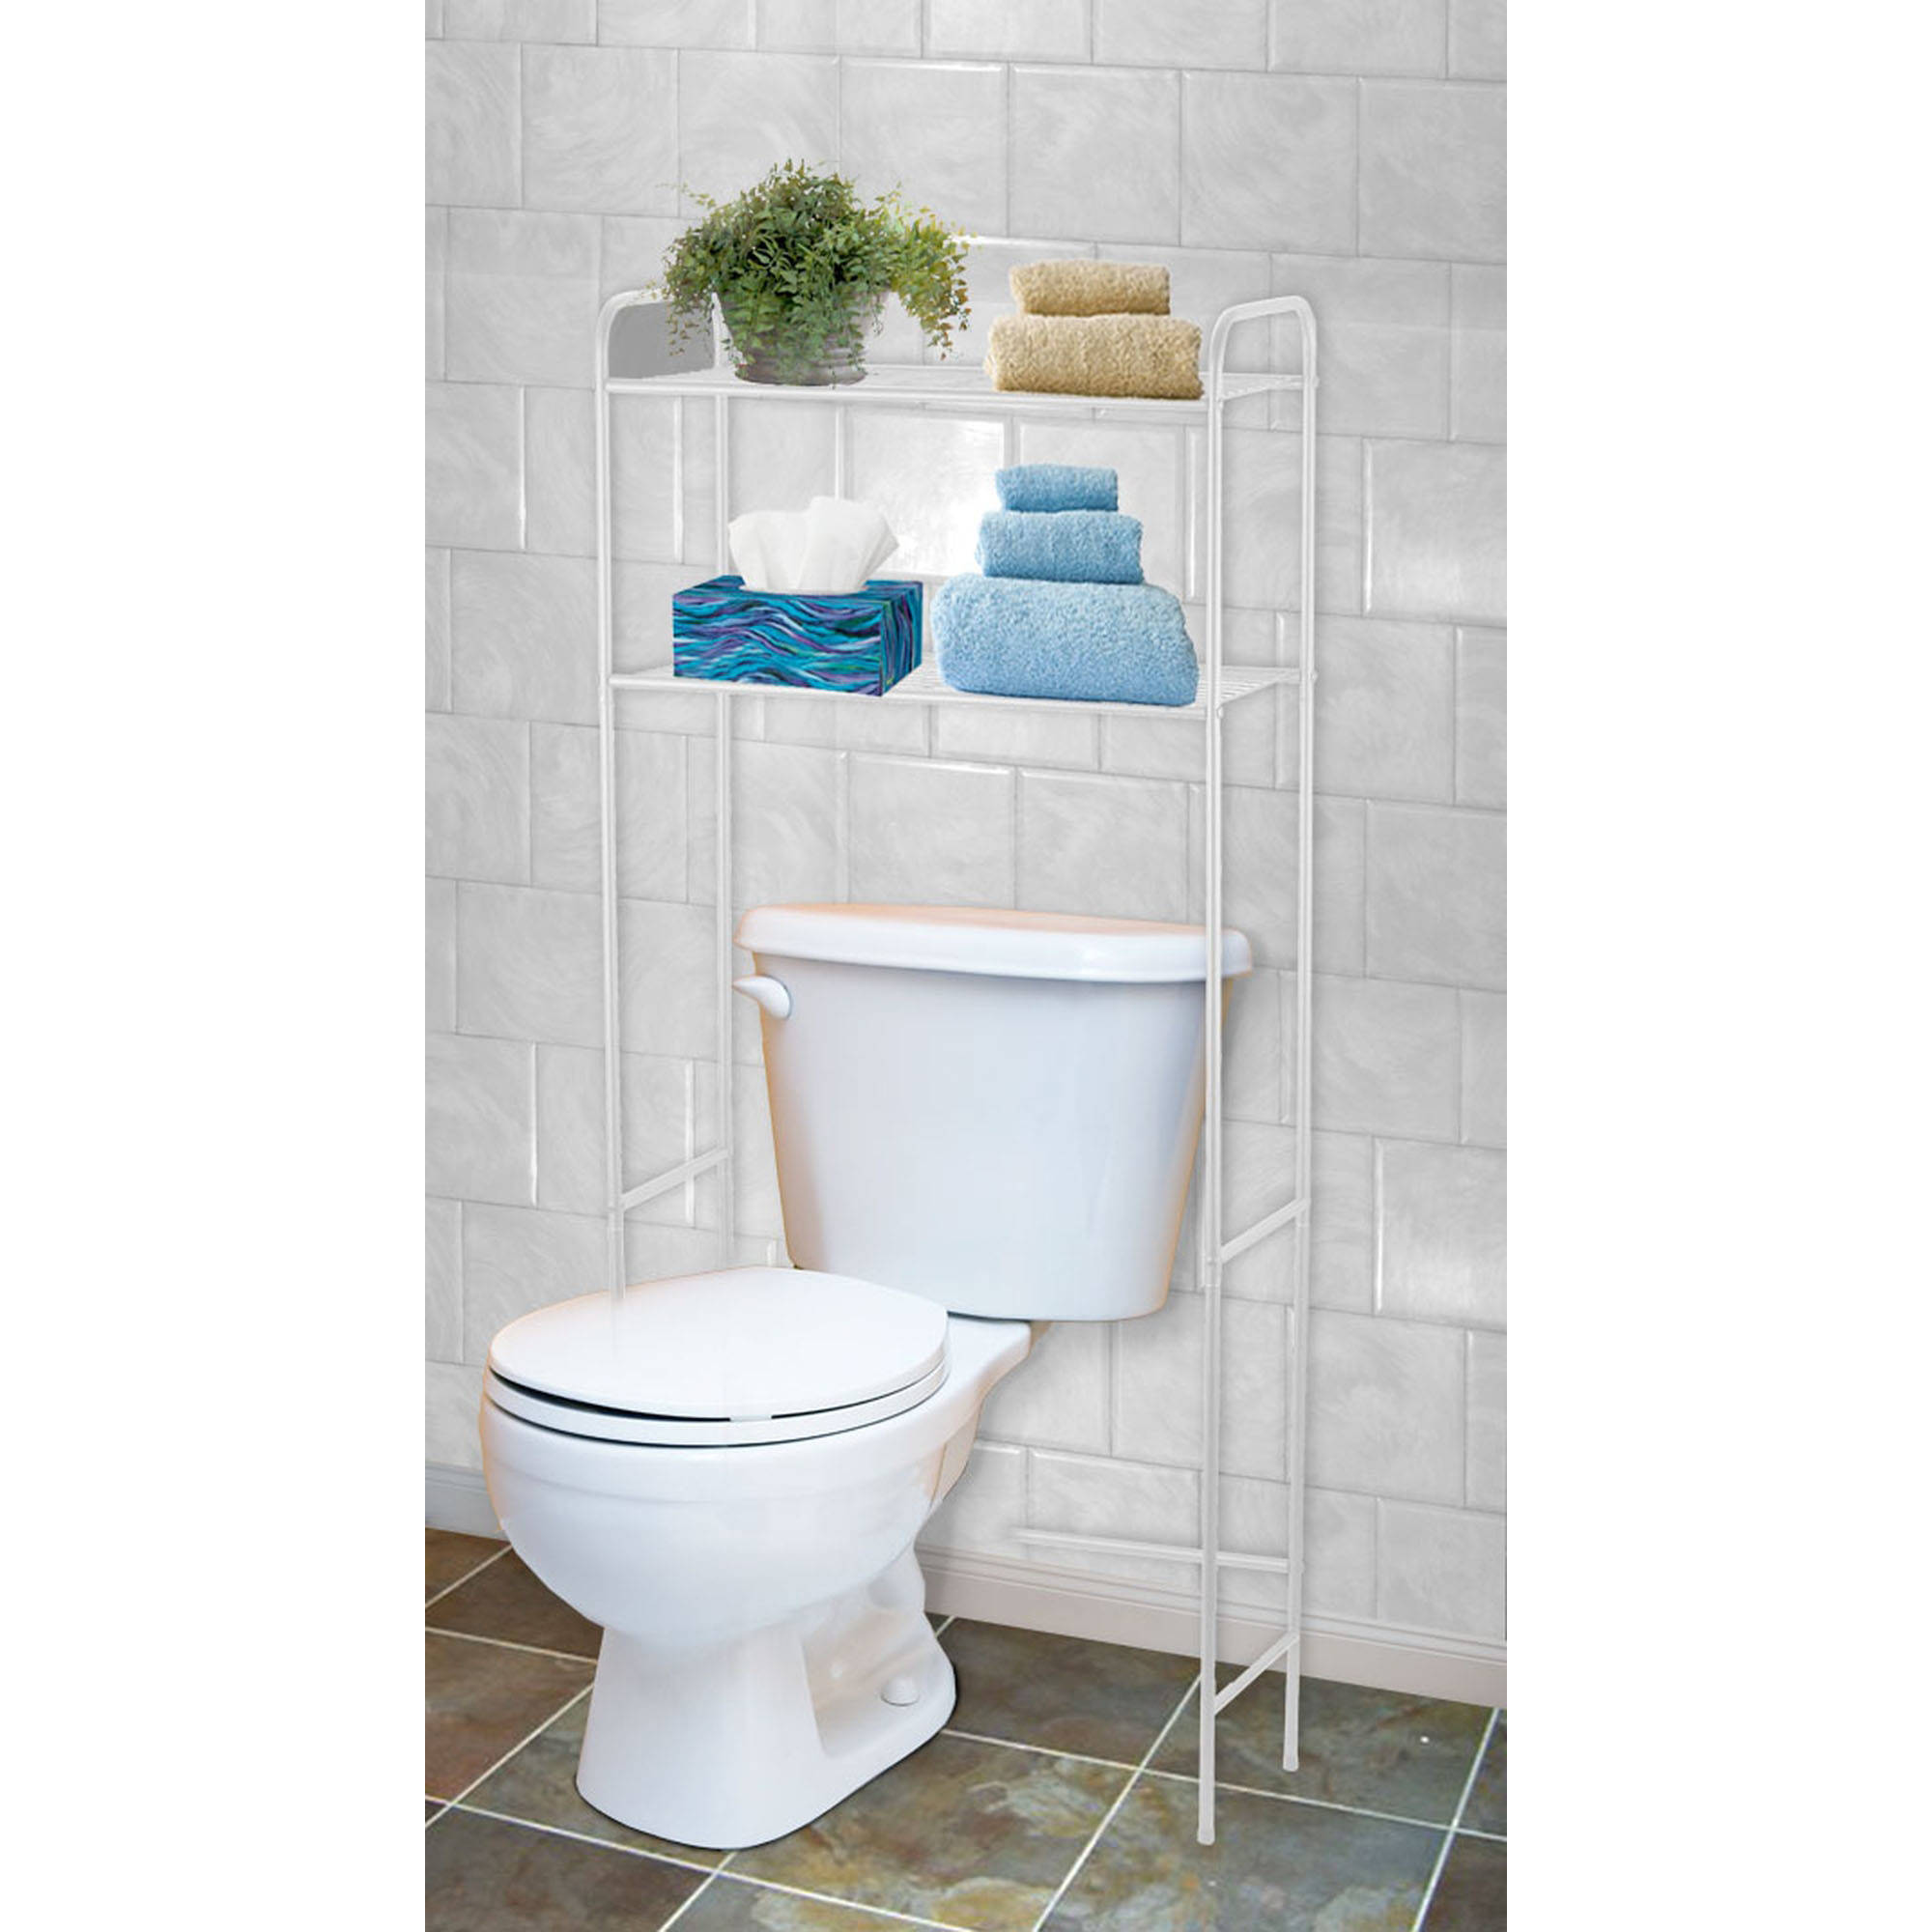 Bathroom Space Saver home basics 2-shelf bathroom space saver - walmart